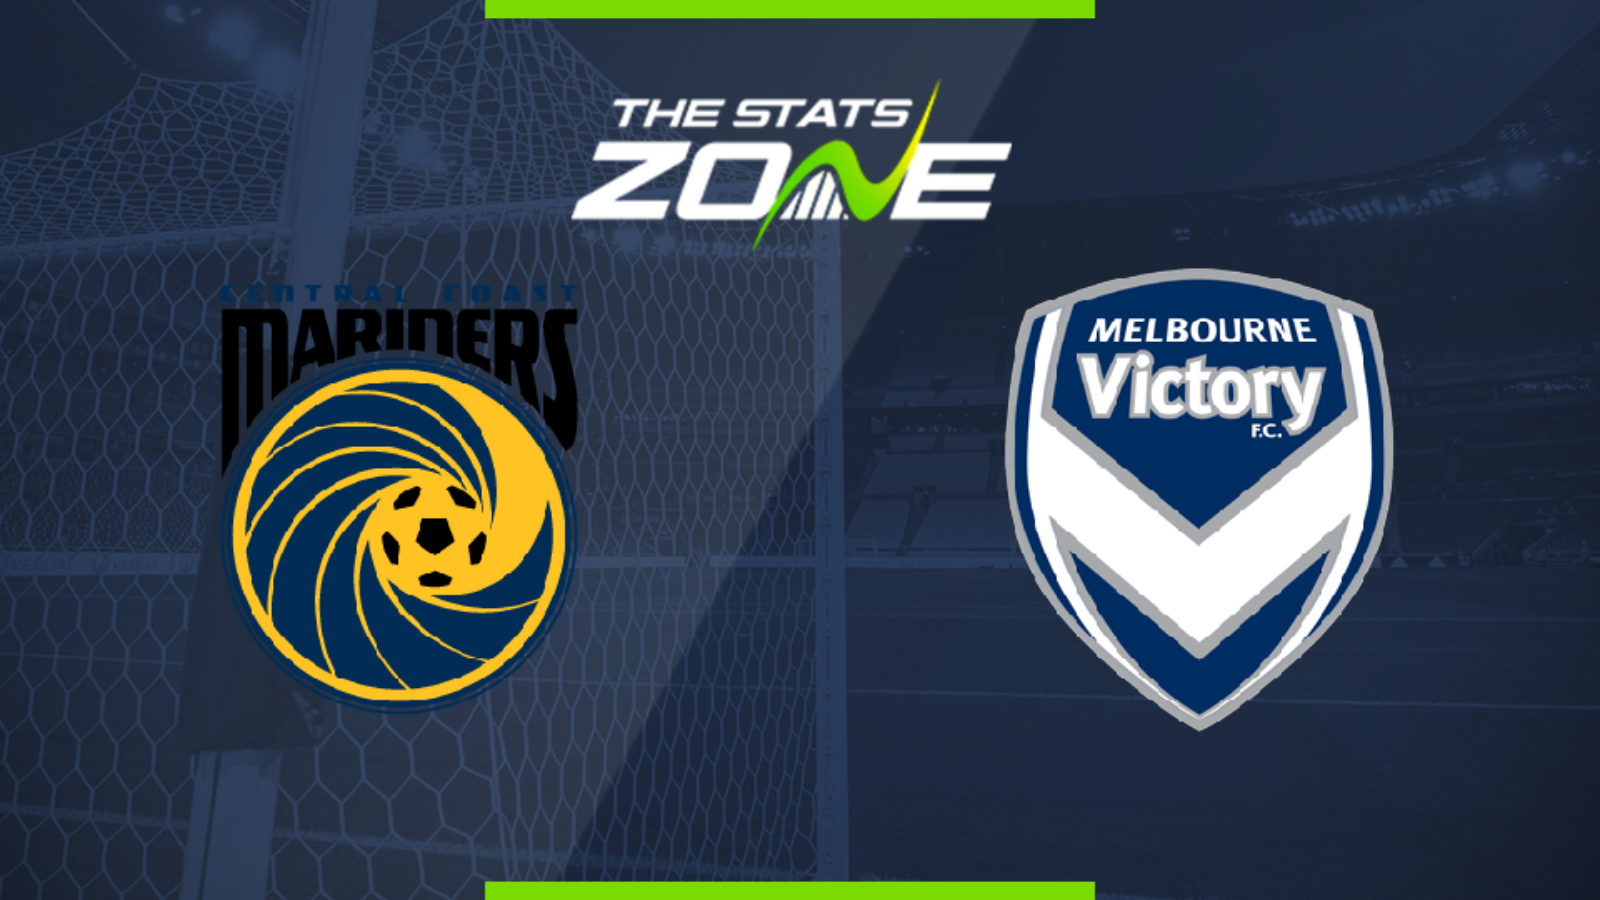 Central coast mariners v melbourne victory betting tips biased wheel section betting roulette